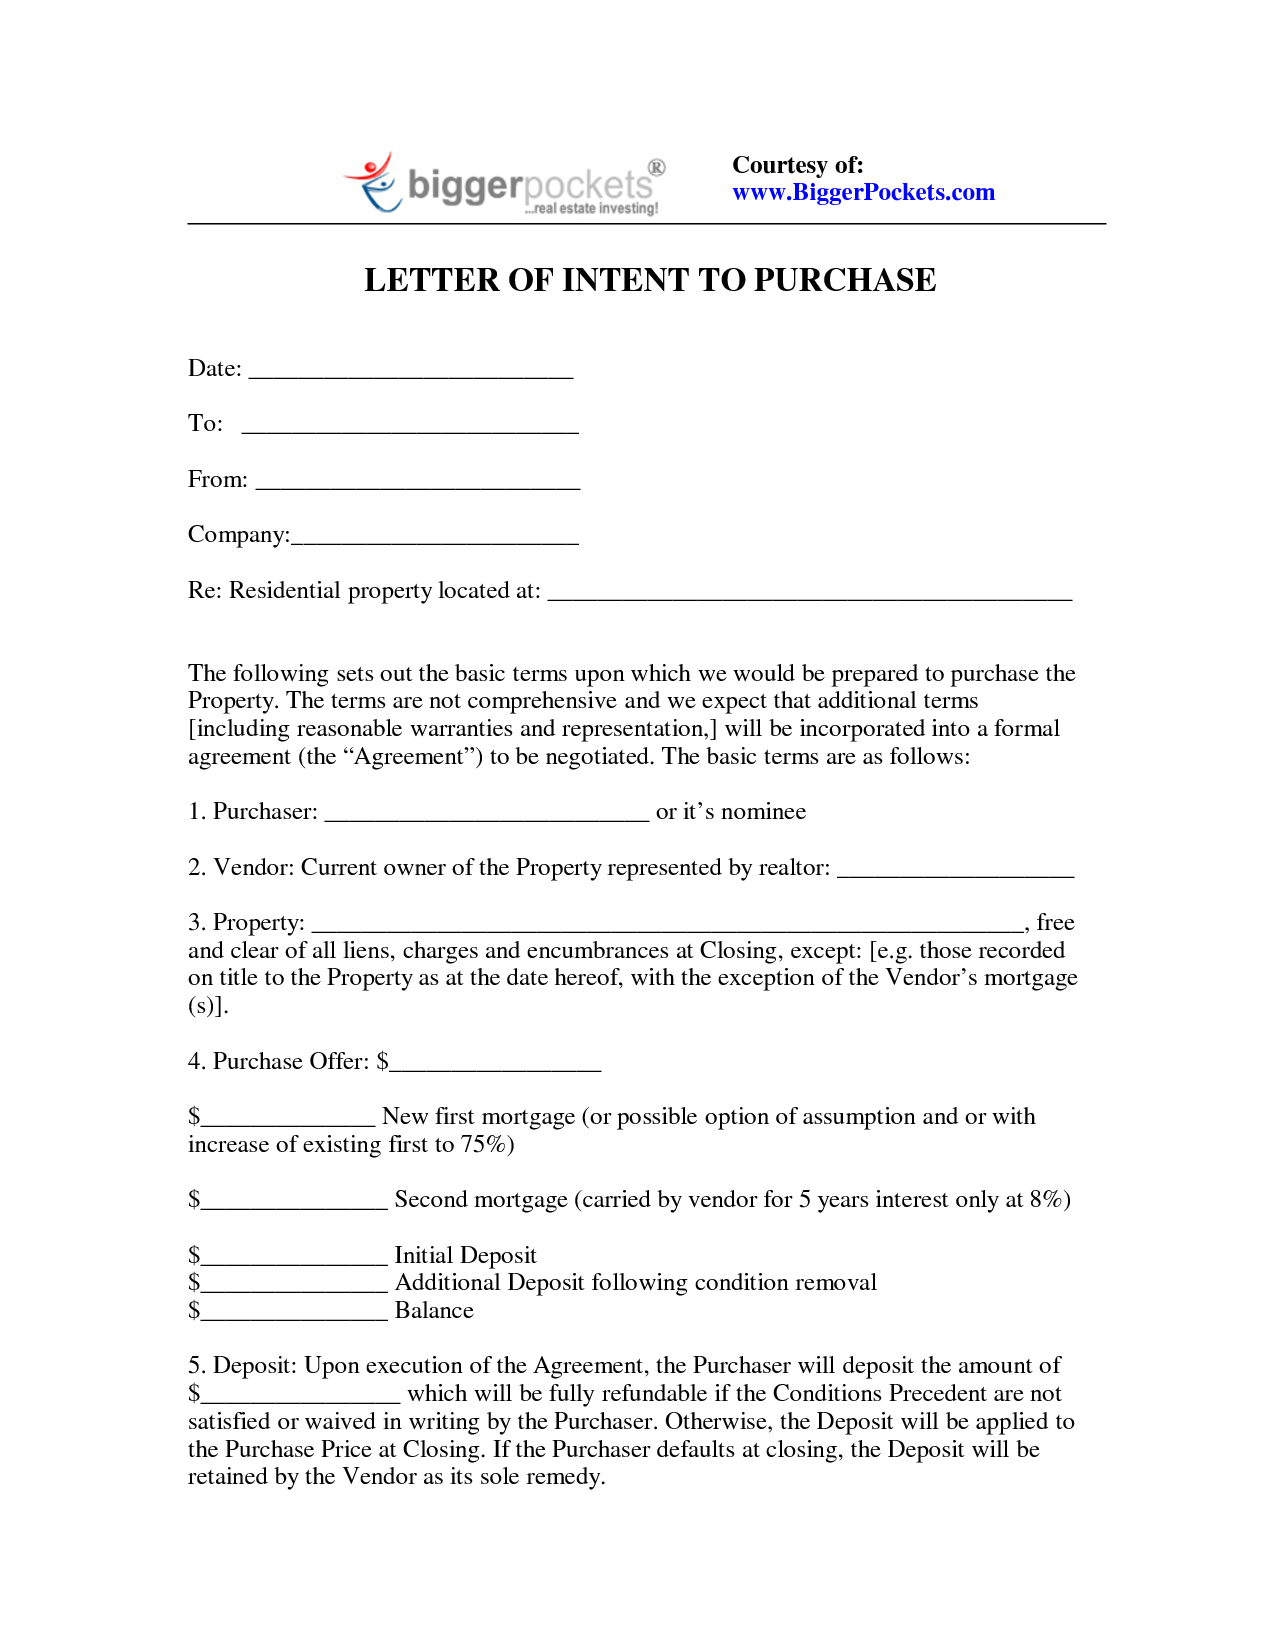 Letter Of Intent Investment Template - Best Sf Template Proposal Property Buying Letter Intent for